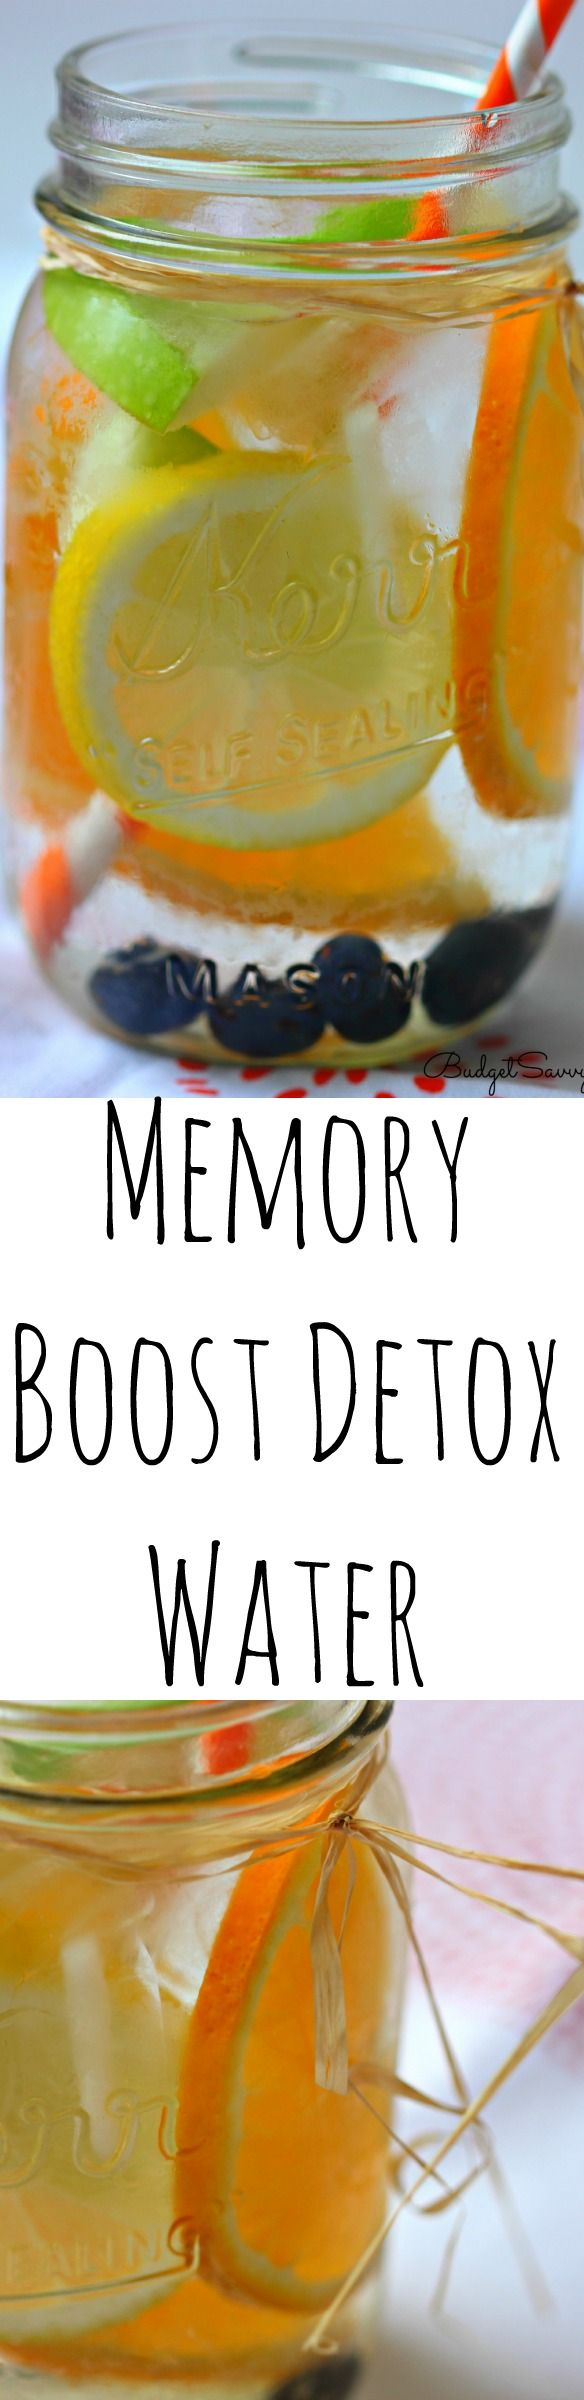 Memory Boost Detox Water Recipe - the flavor of this detox water is amazing. This really is one of the easiest recipes